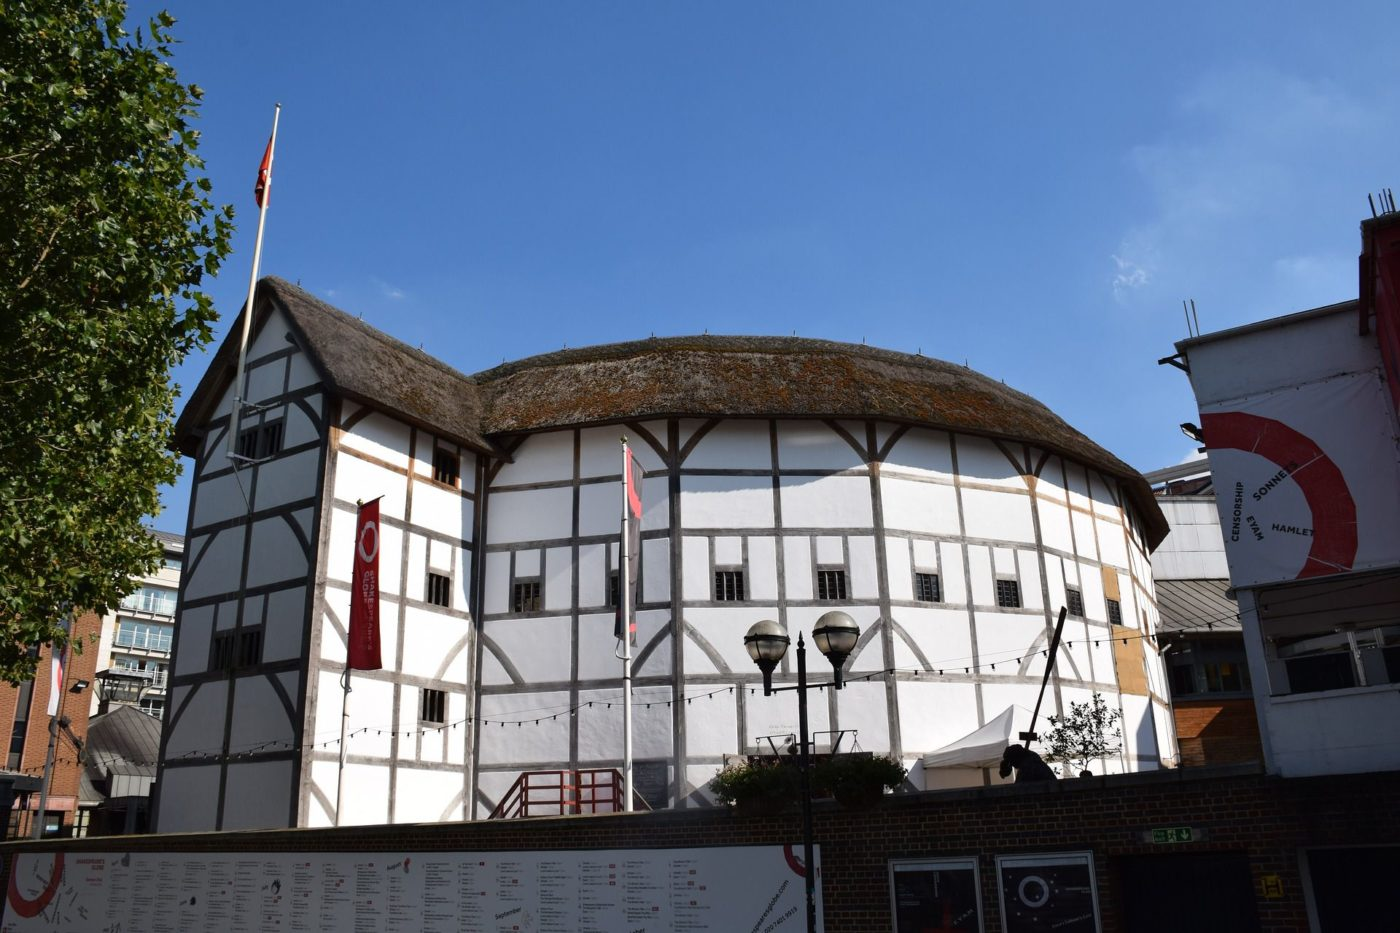 A photograph of the exterior of Shakespeare's Globe Theatre in London.